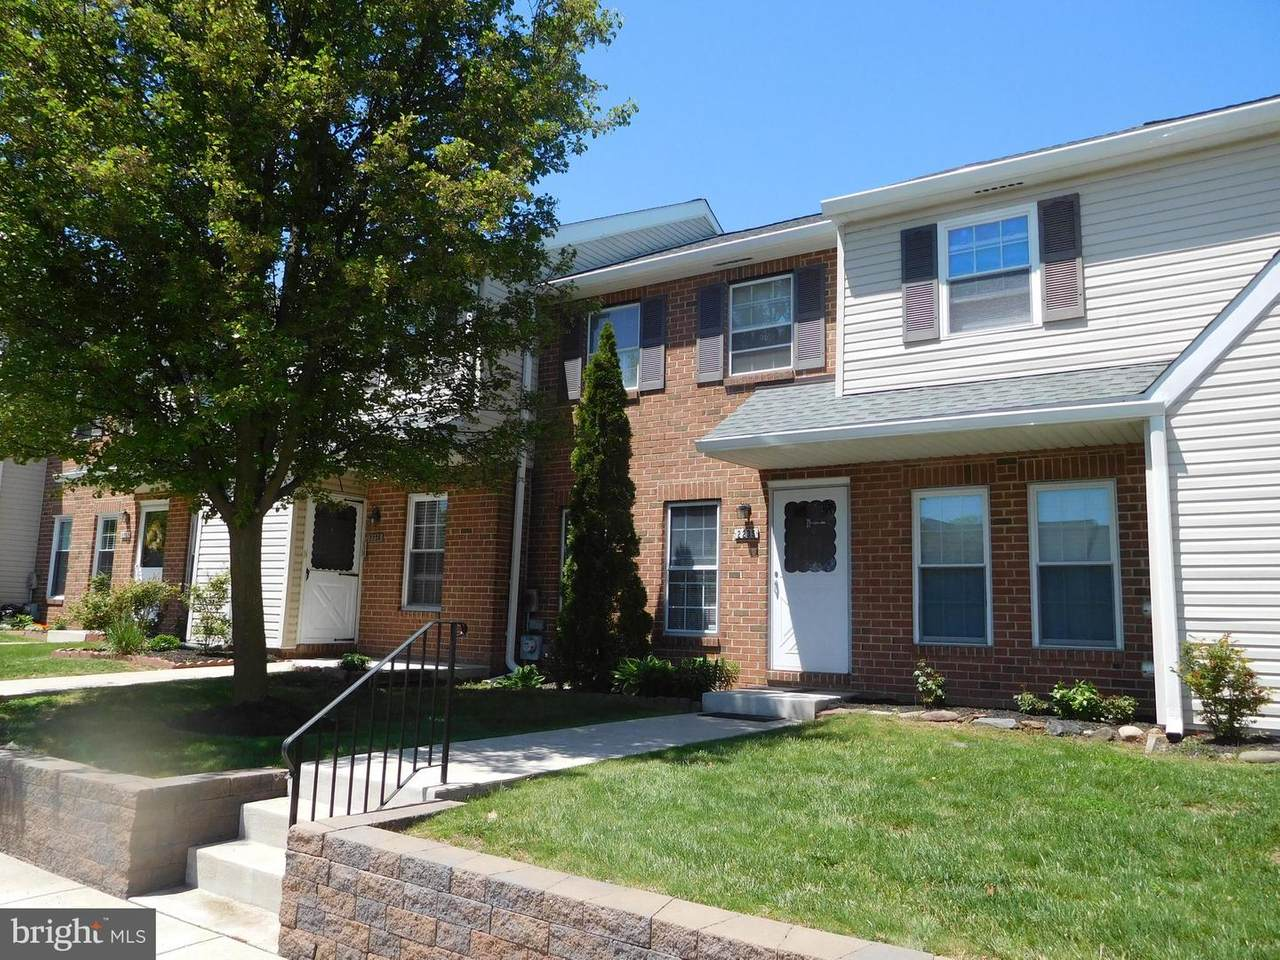 2235 Mulberry Court - Photo 1